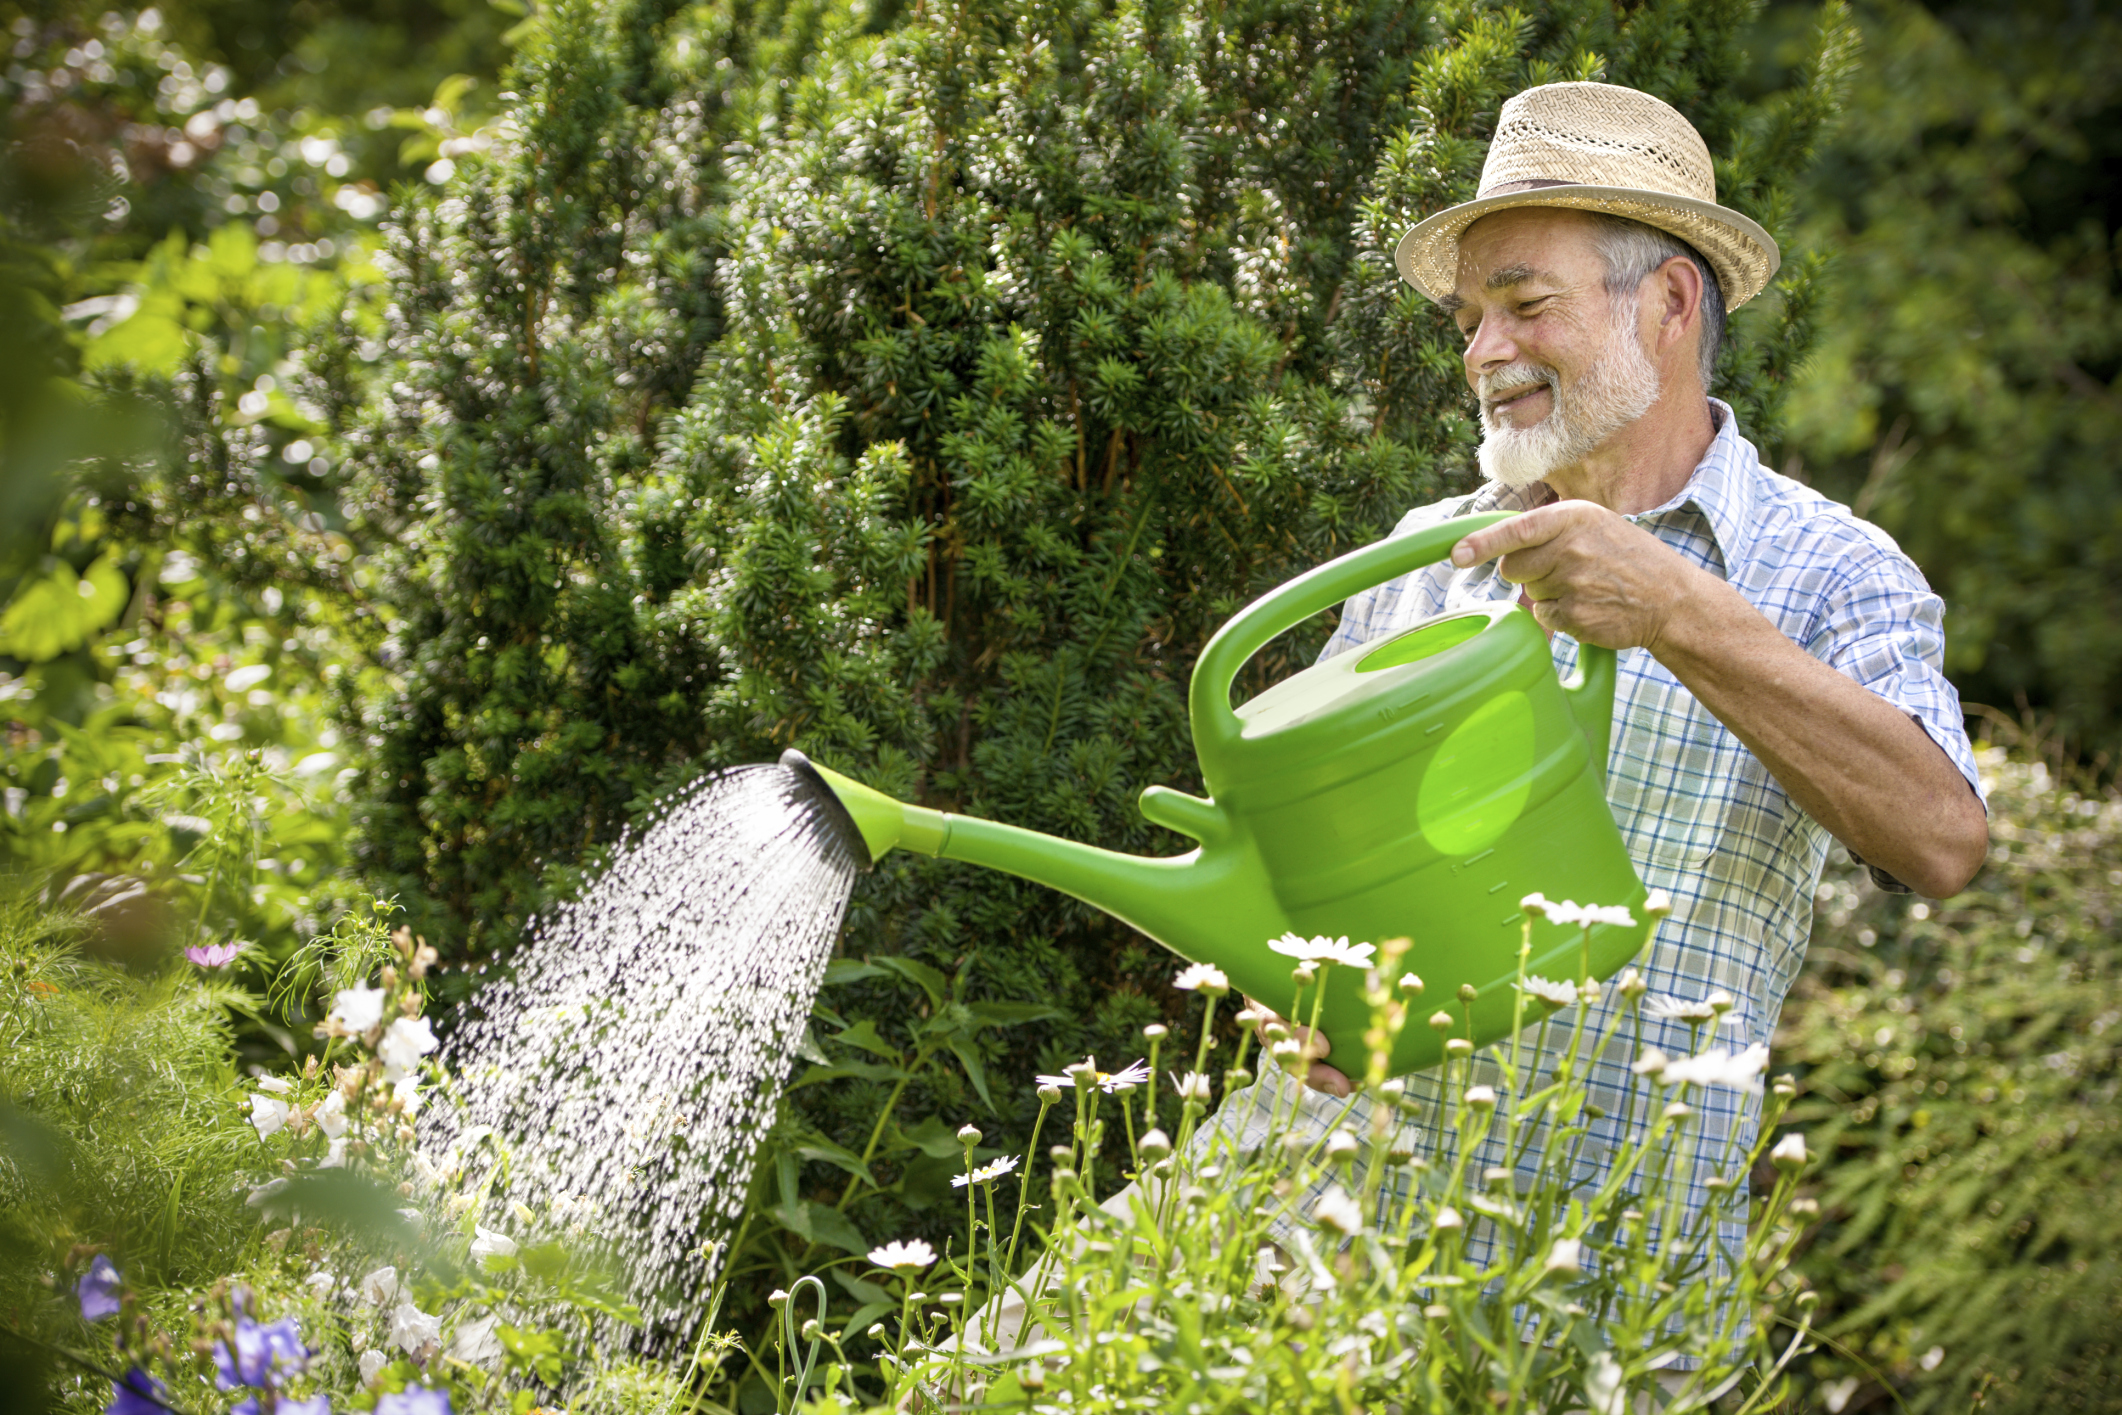 Plant Watering Cans When Should I Water My Plants The Veggie Lady